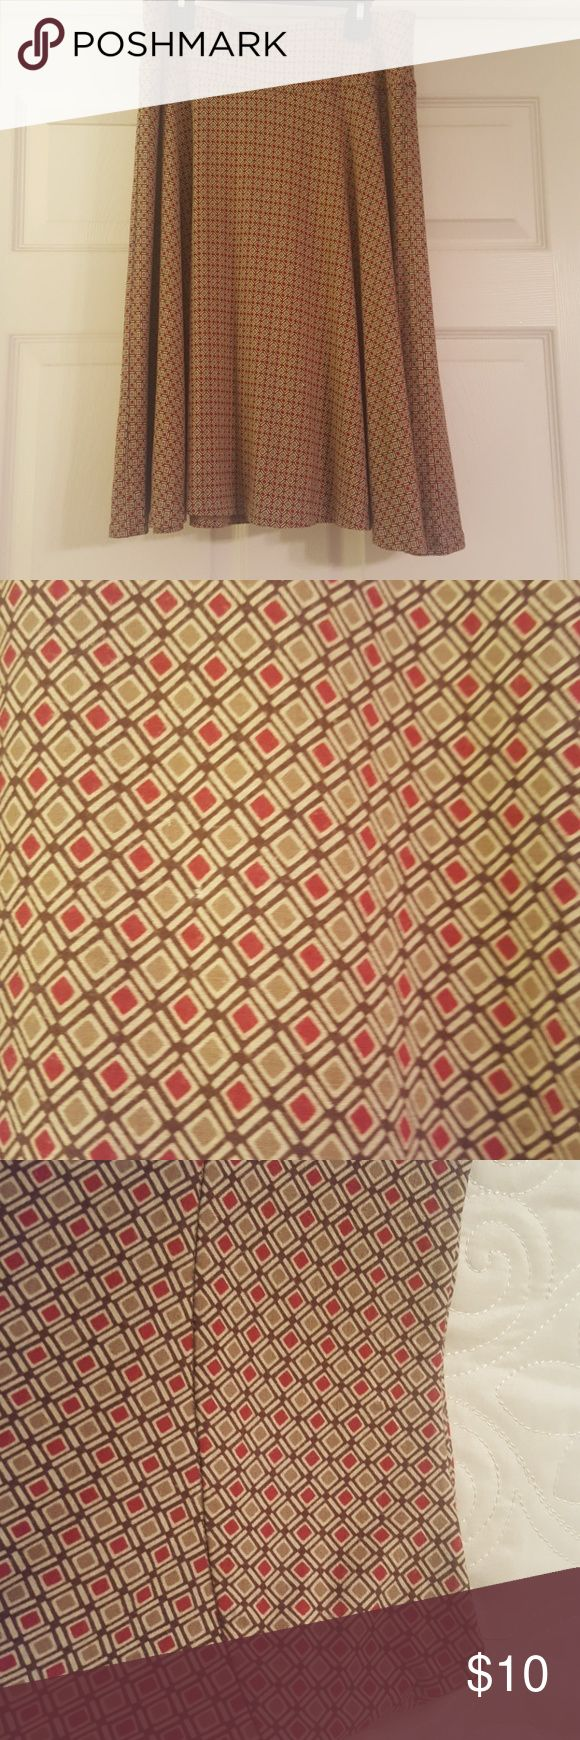 New York and Company geometric print skirt size S. New York and Company geometric print skirt size S. Great used condition. Beautiful red, gold, and brown colors. Wide waist band with a swing style. Has a lining inside.  Non smoking home. New York and Company Skirts A-Line or Full